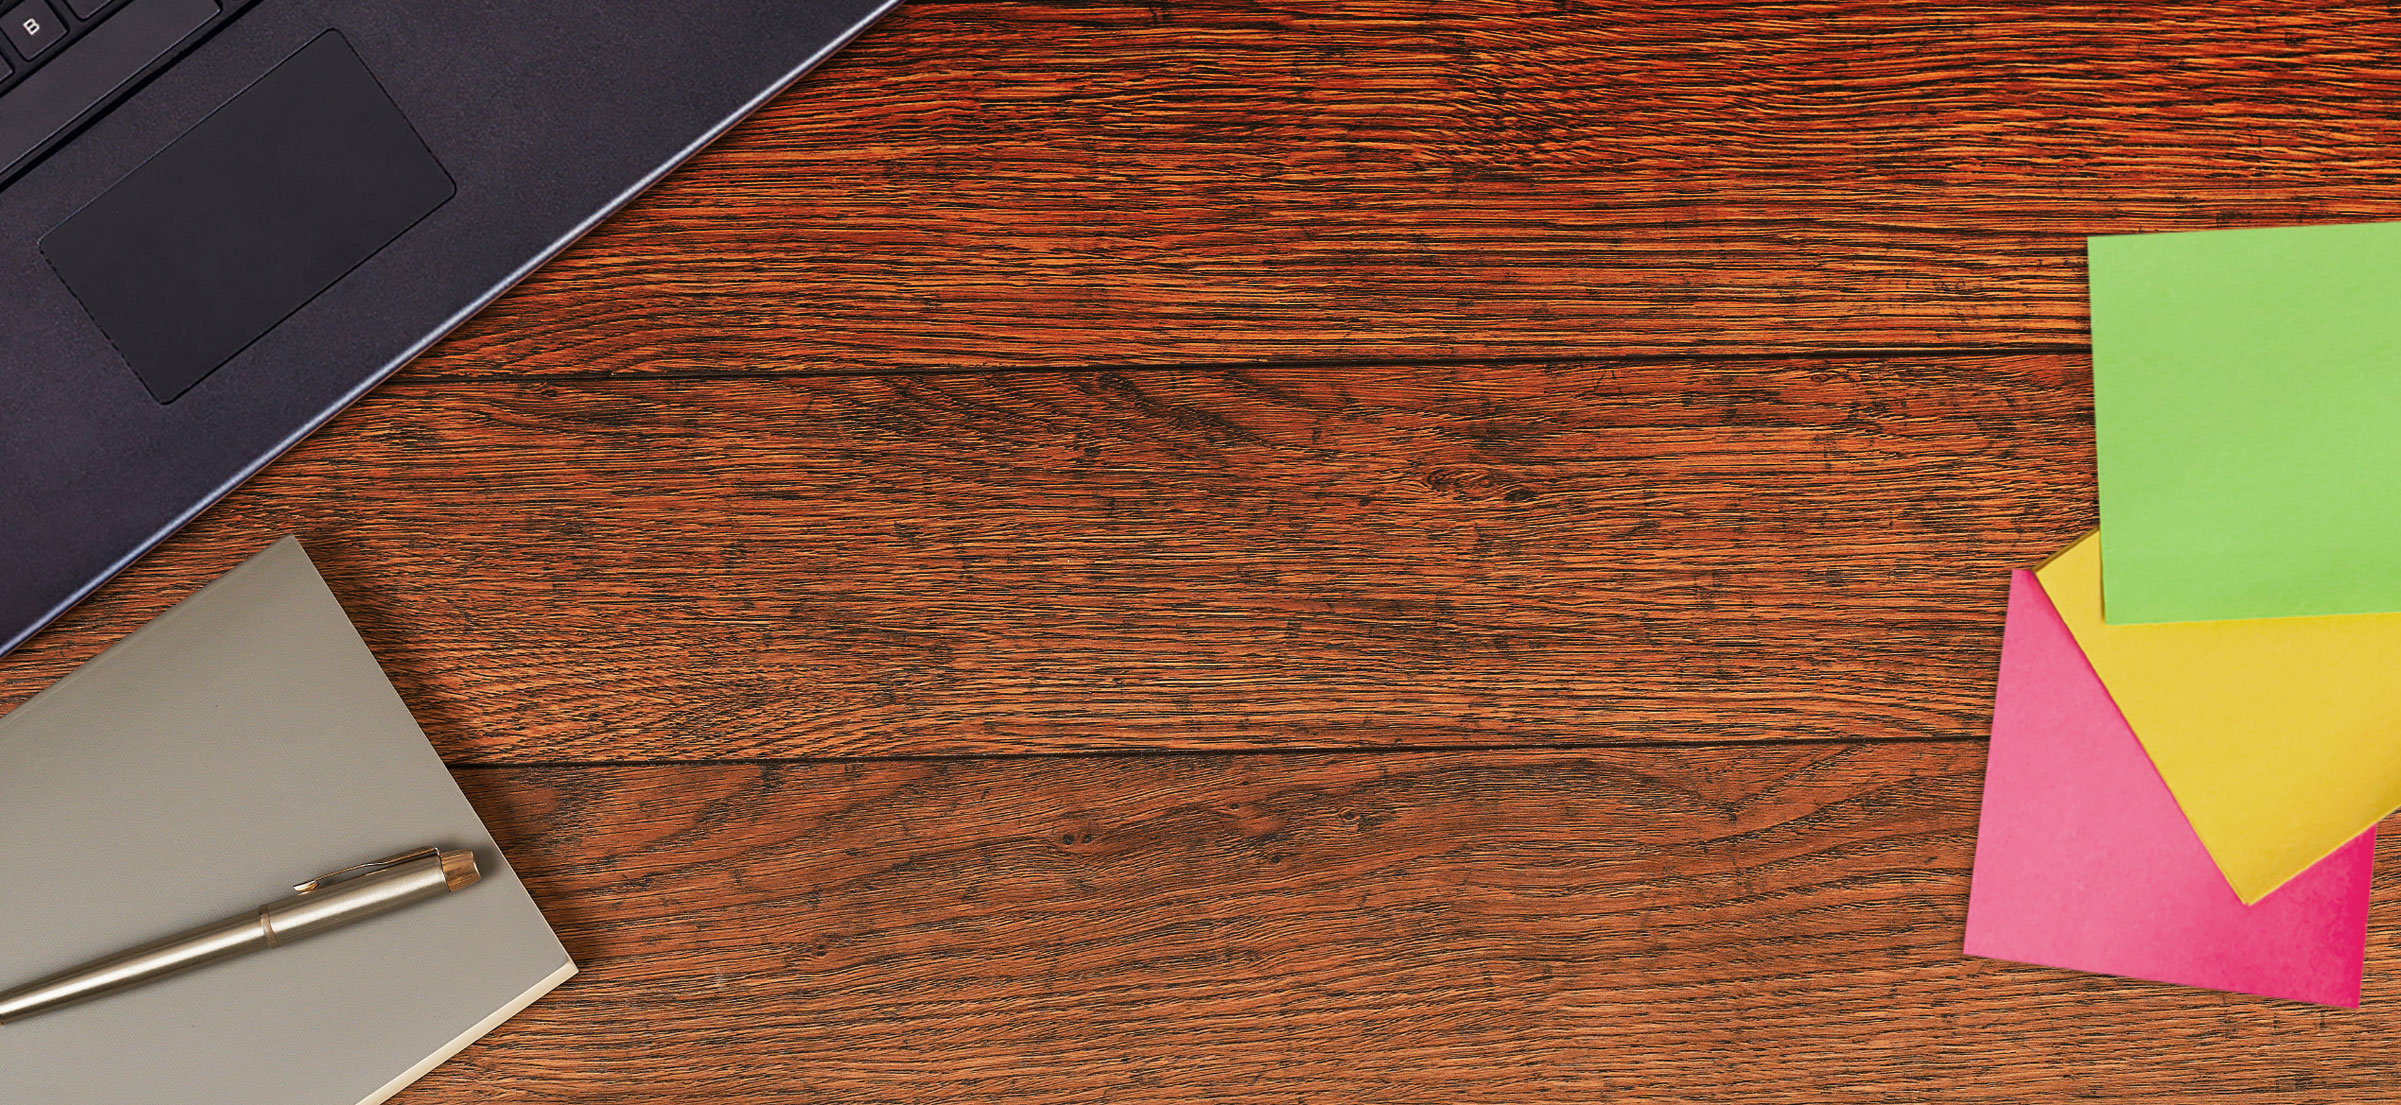 Building a better compliance management system.